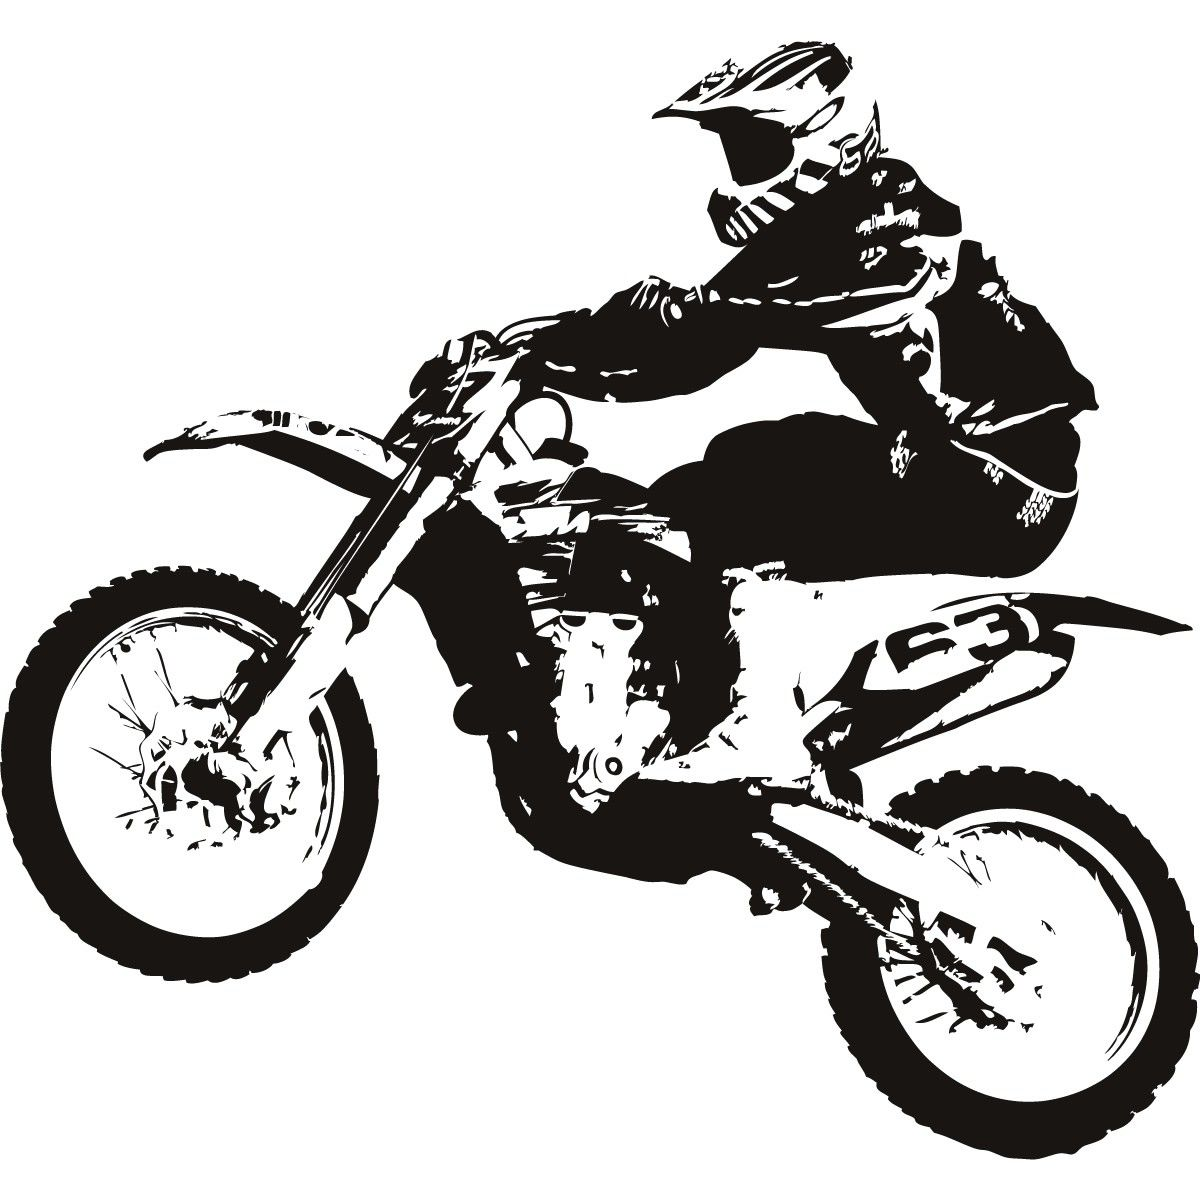 free download motocross bike clipart for your creation  [ 1200 x 1200 Pixel ]